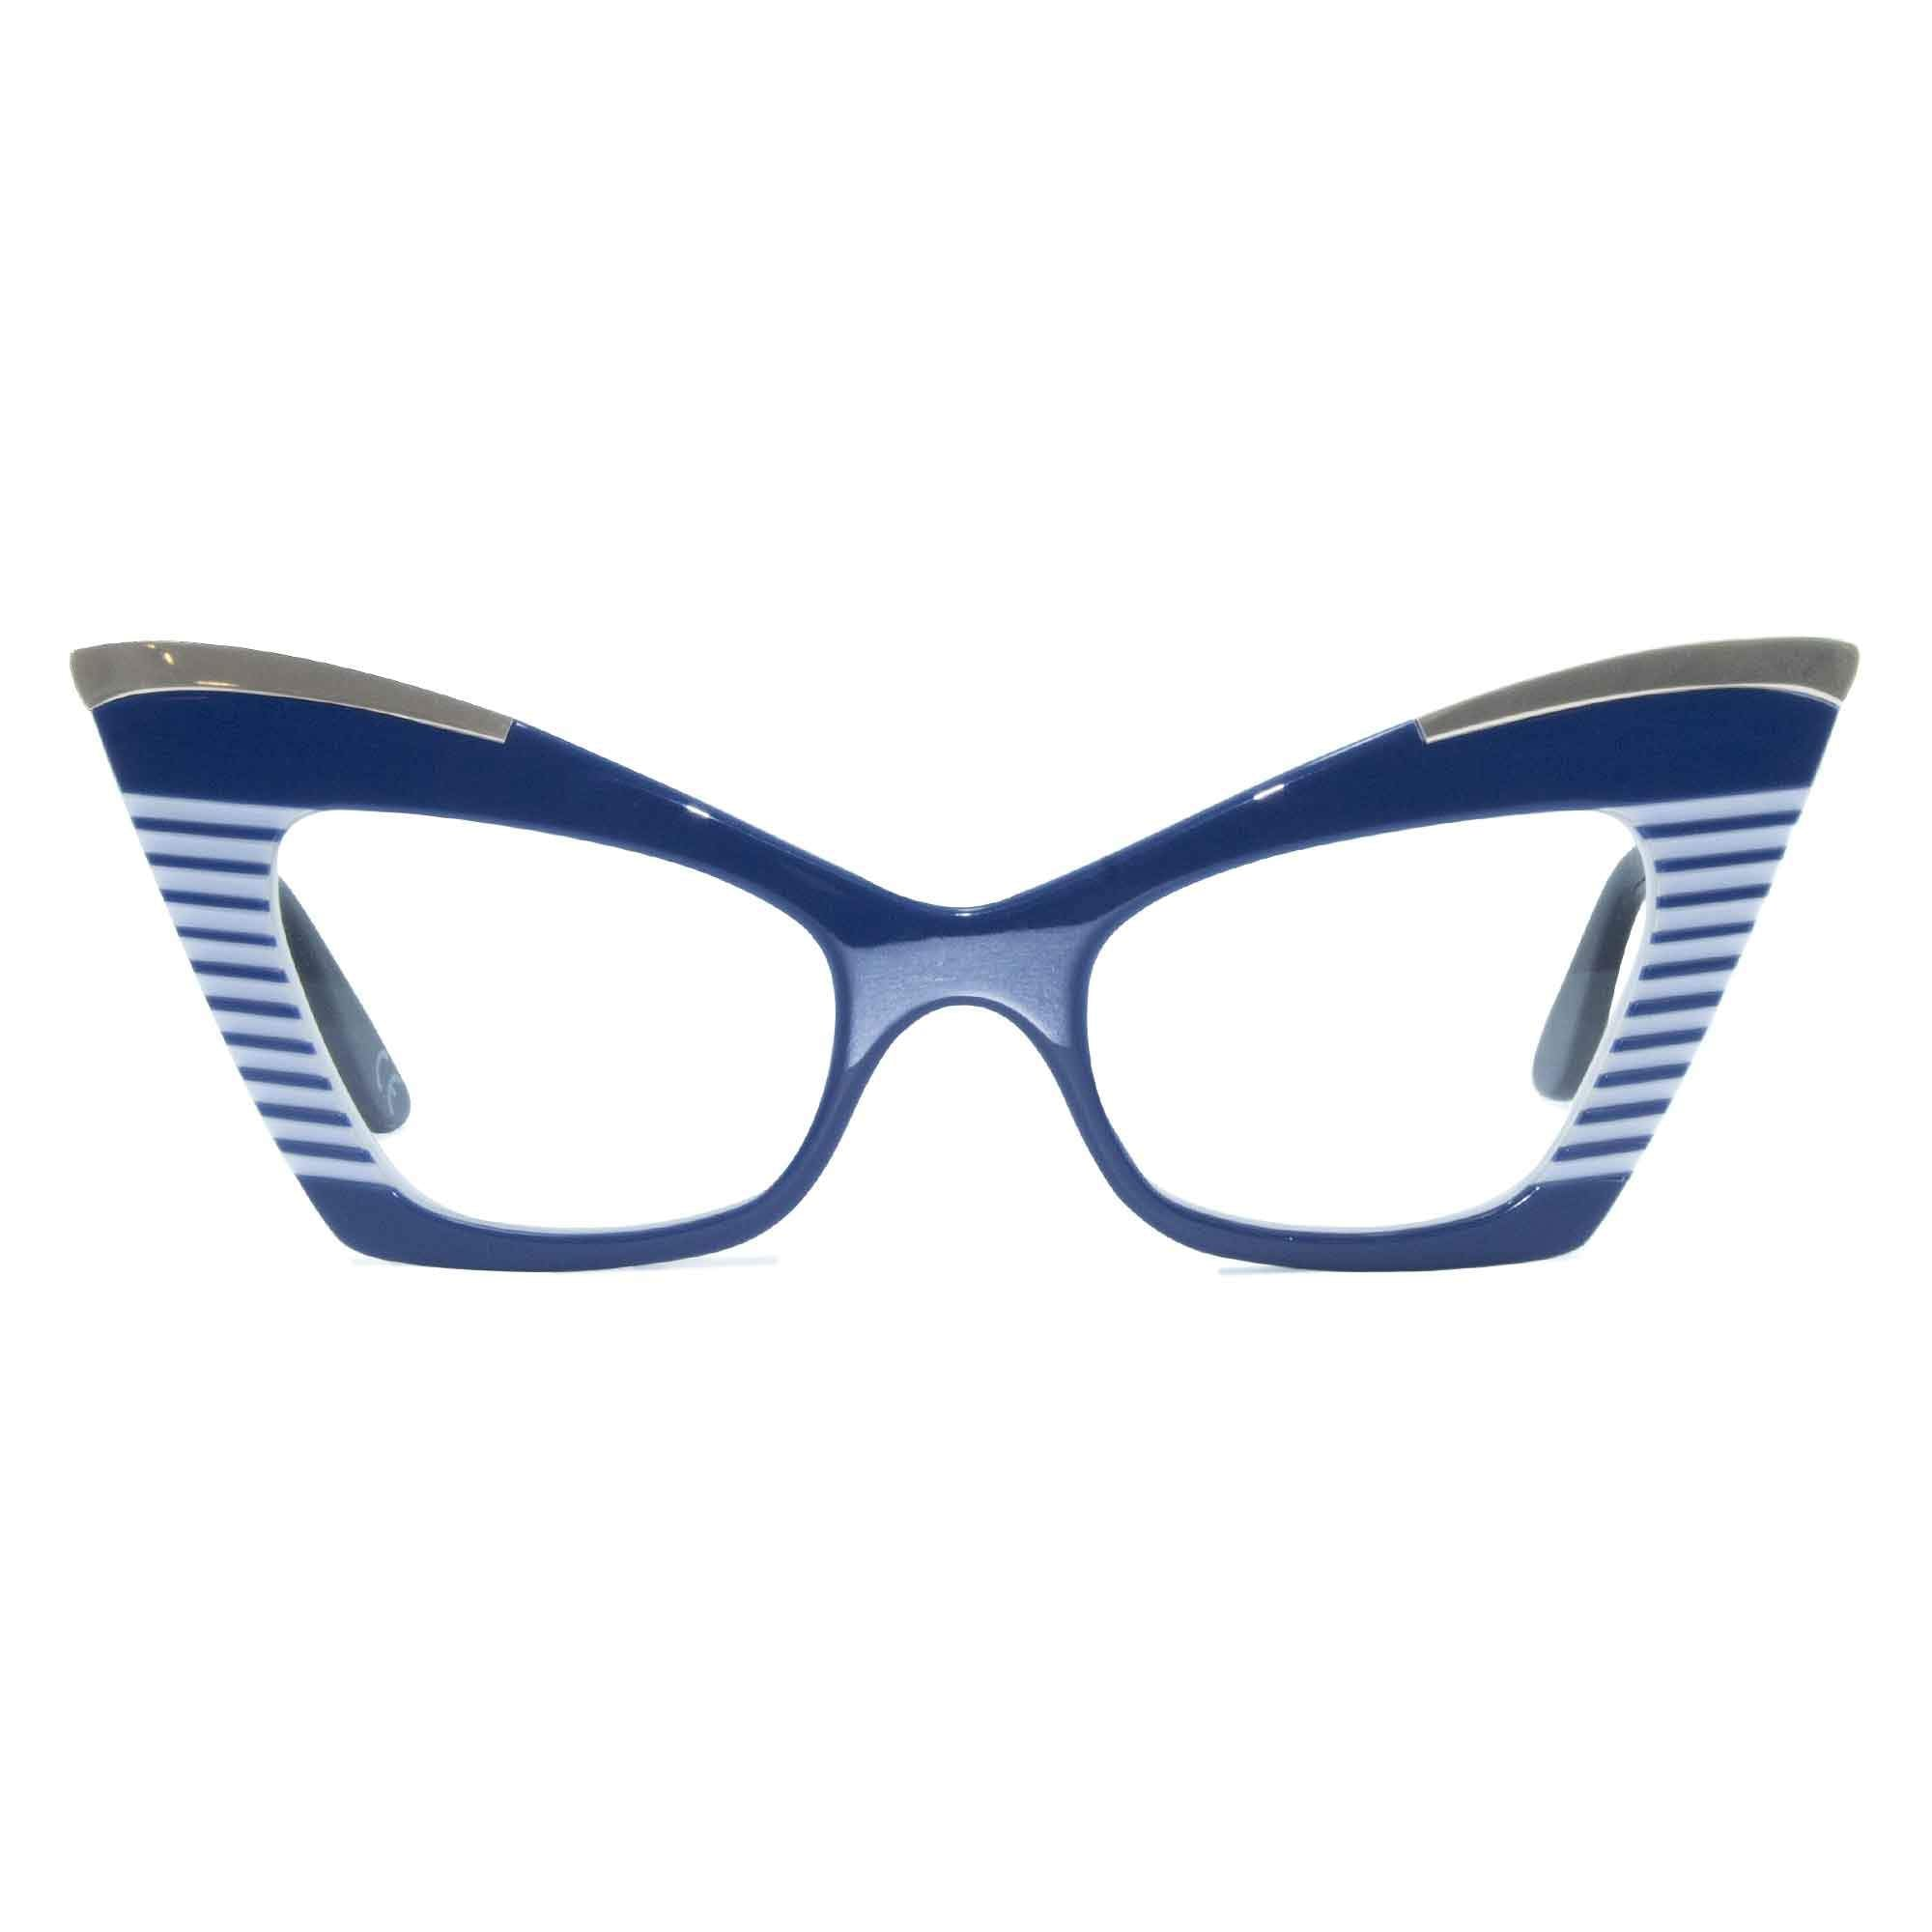 navy & white cat eye glasses